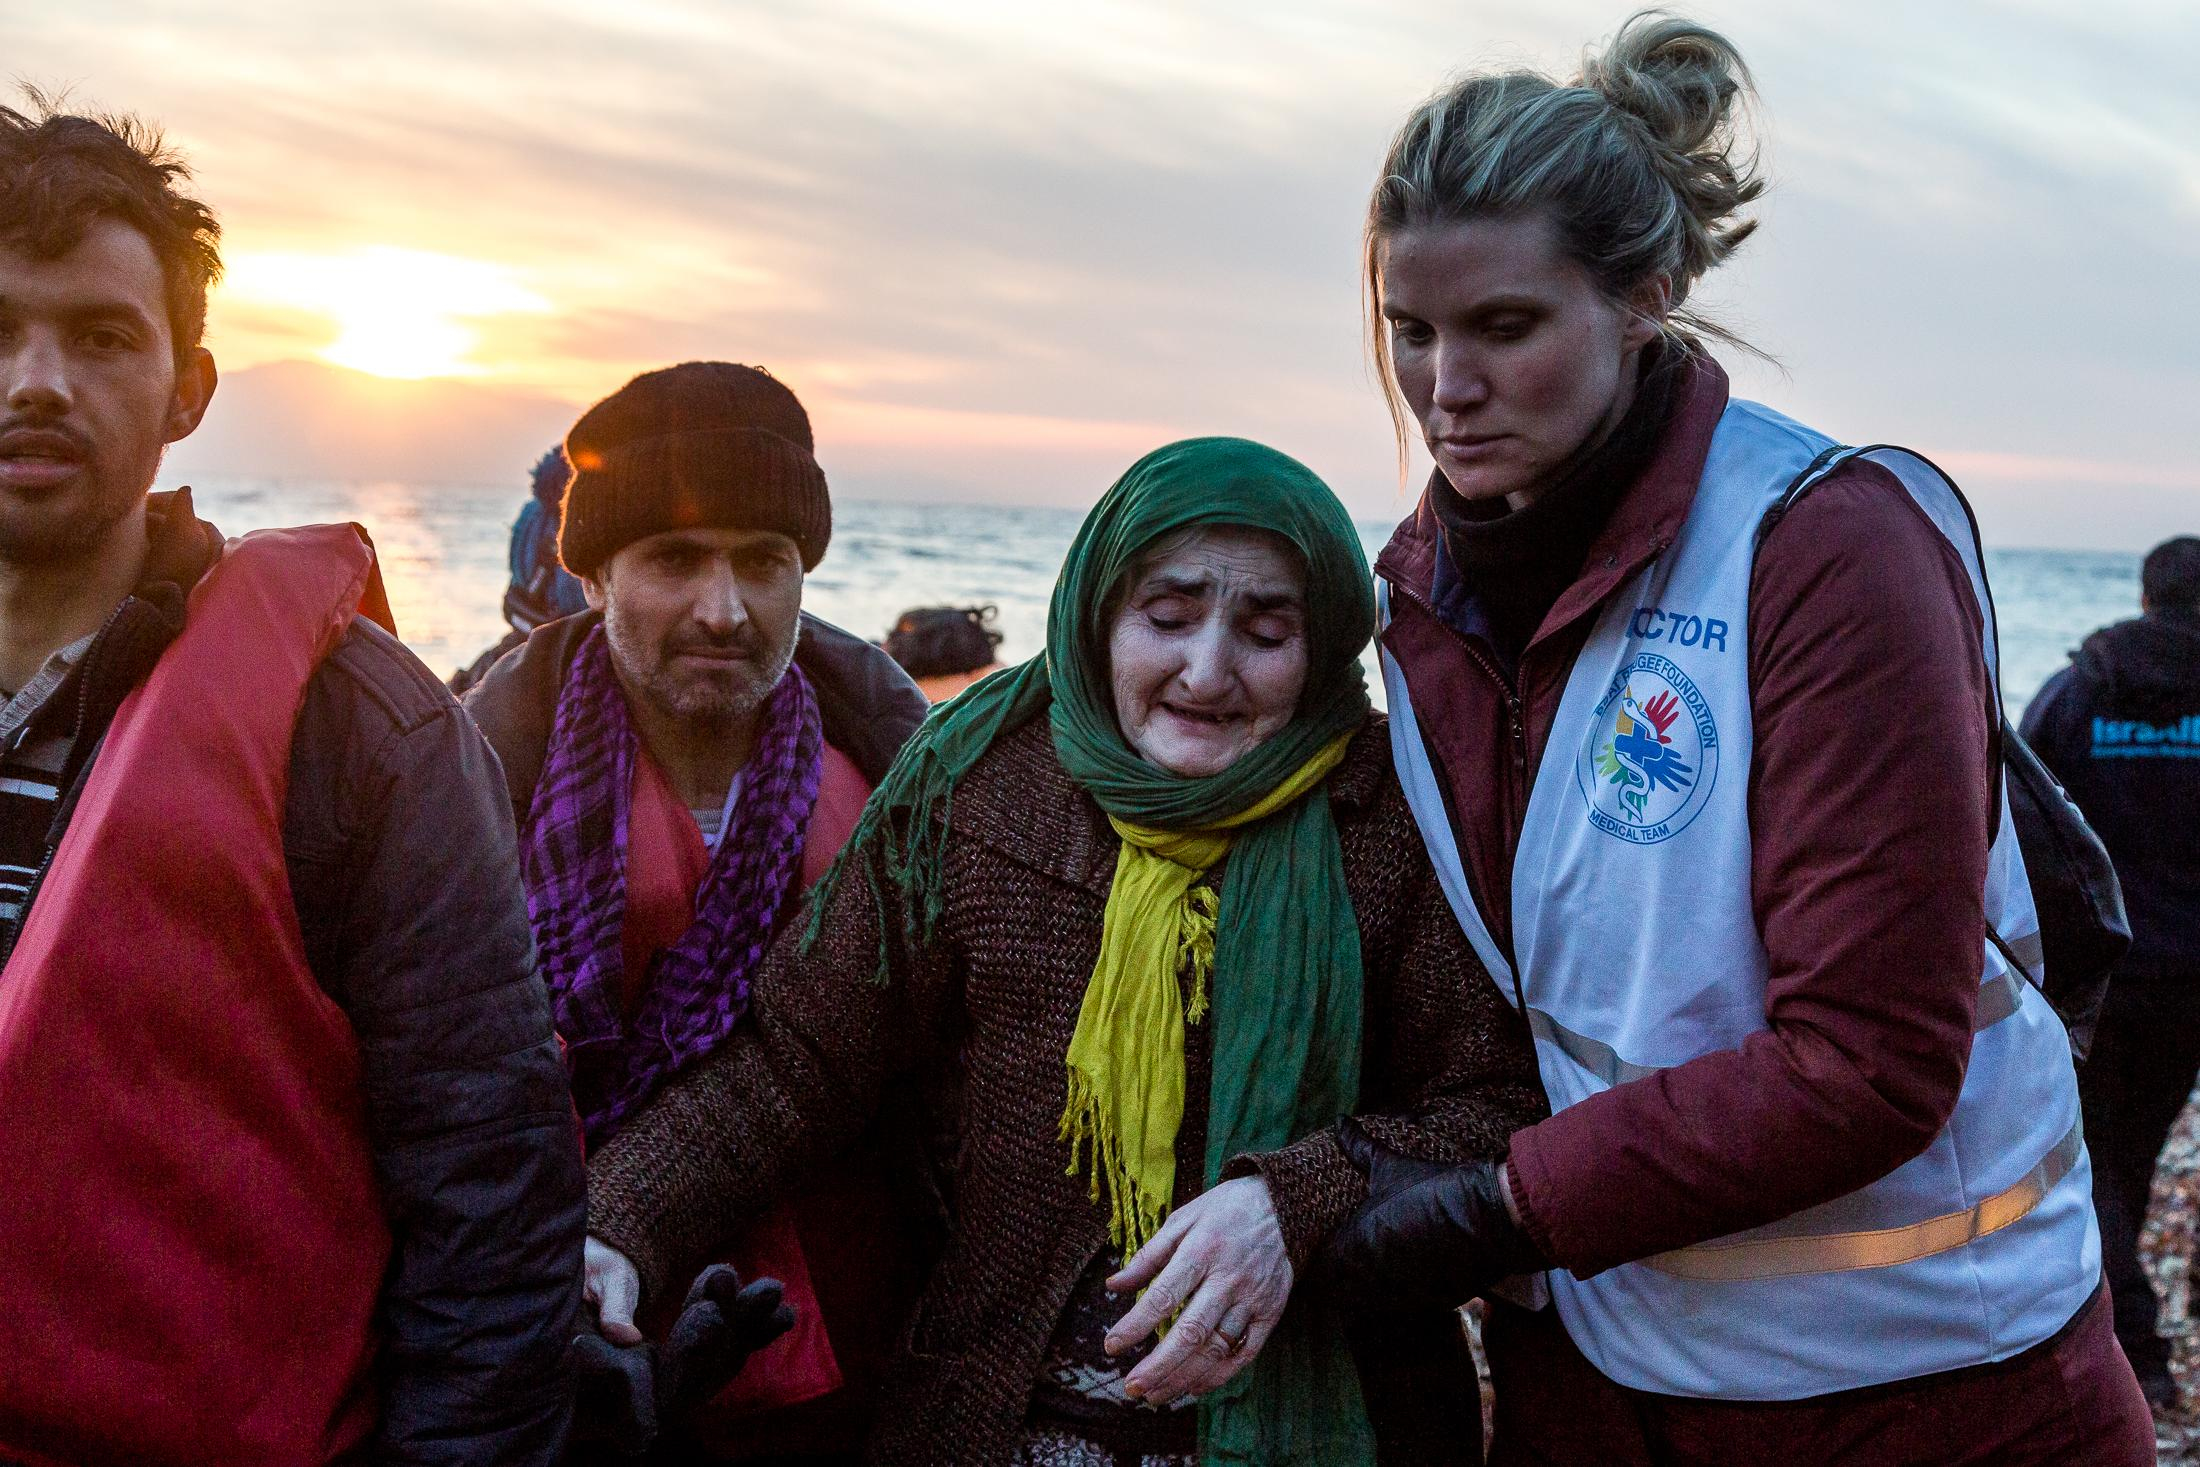 LESVOS, GREECE - FEBRUARY 09, 2016: A doctor helps Sara after getting off a dinghy on which they crossed the Aegean sea from the Turkish coast with dozens of refugees on February 09, 2015 in Lesvos, Greece. A UNHCR survey released last month found that 94% of Syrians and 71% of the Afghans arriving in Greece in January had undertaken the dangerous journey in order to escape conflict and violence in their countries. Photo: © Omar Havana for Action Aid Greece